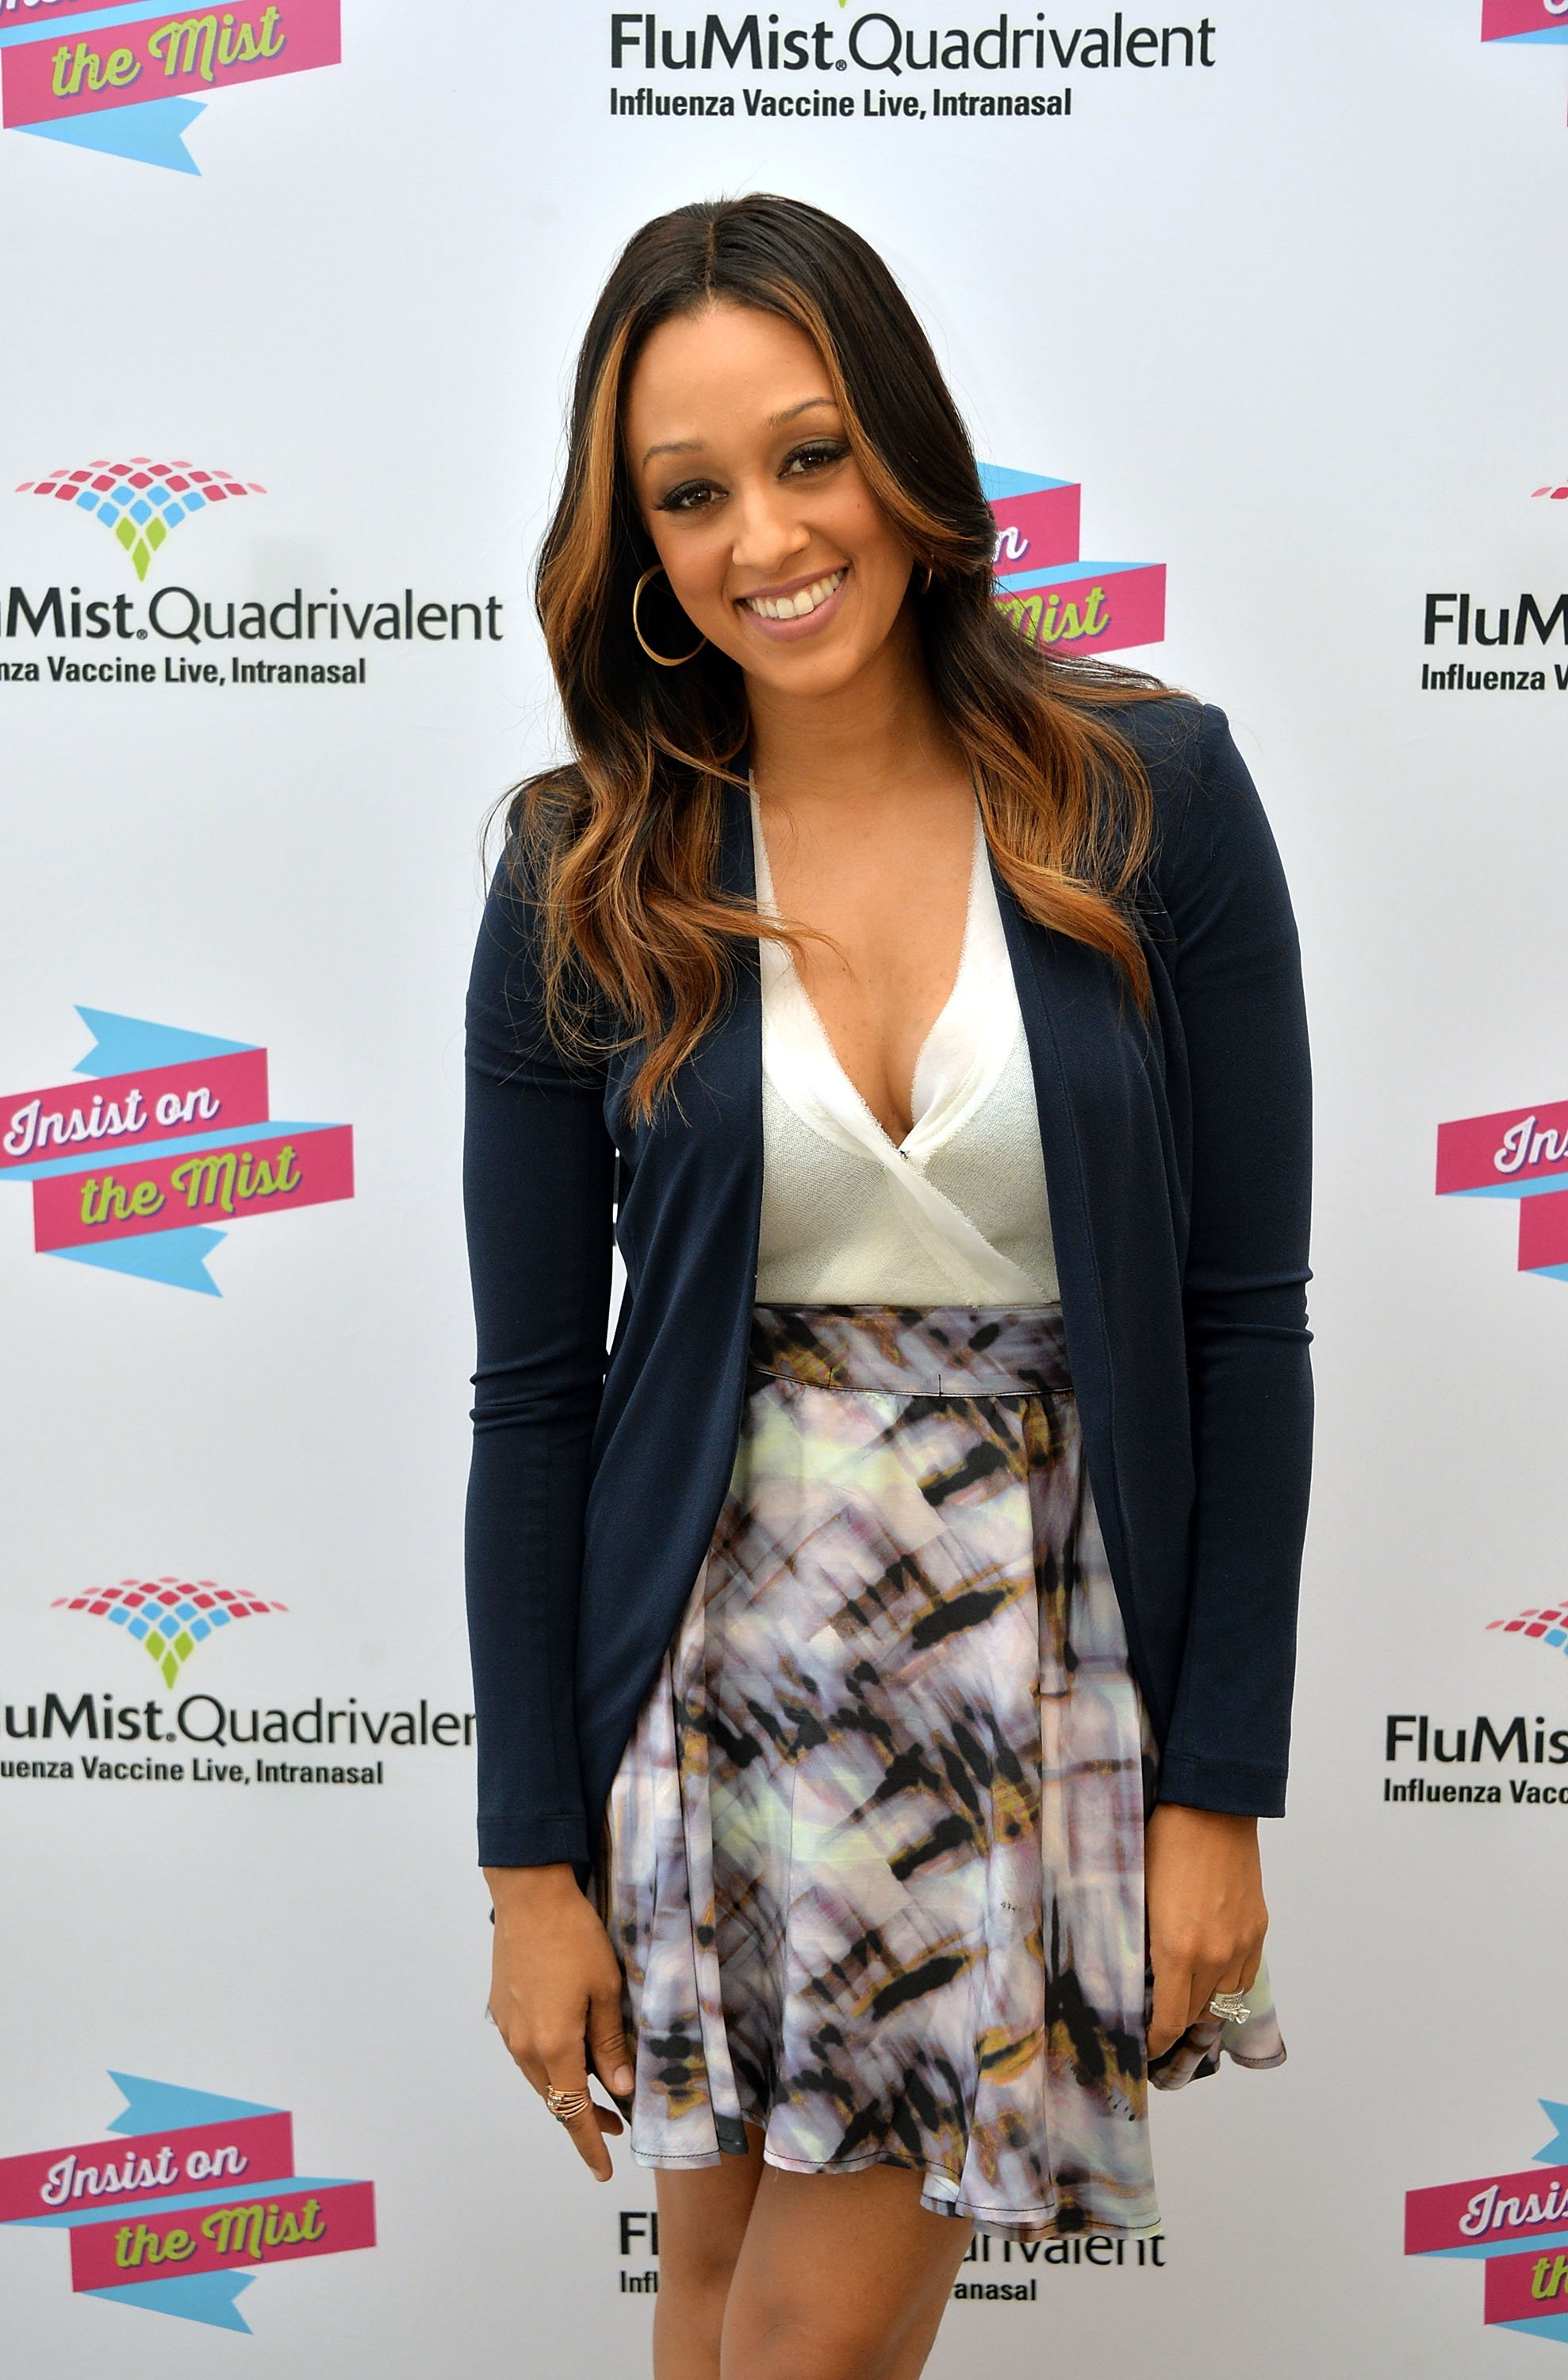 """Tia Mowry at the launch of """"I Insist!""""- a FluMist Quadrivalent, 2013 in New York, USA 